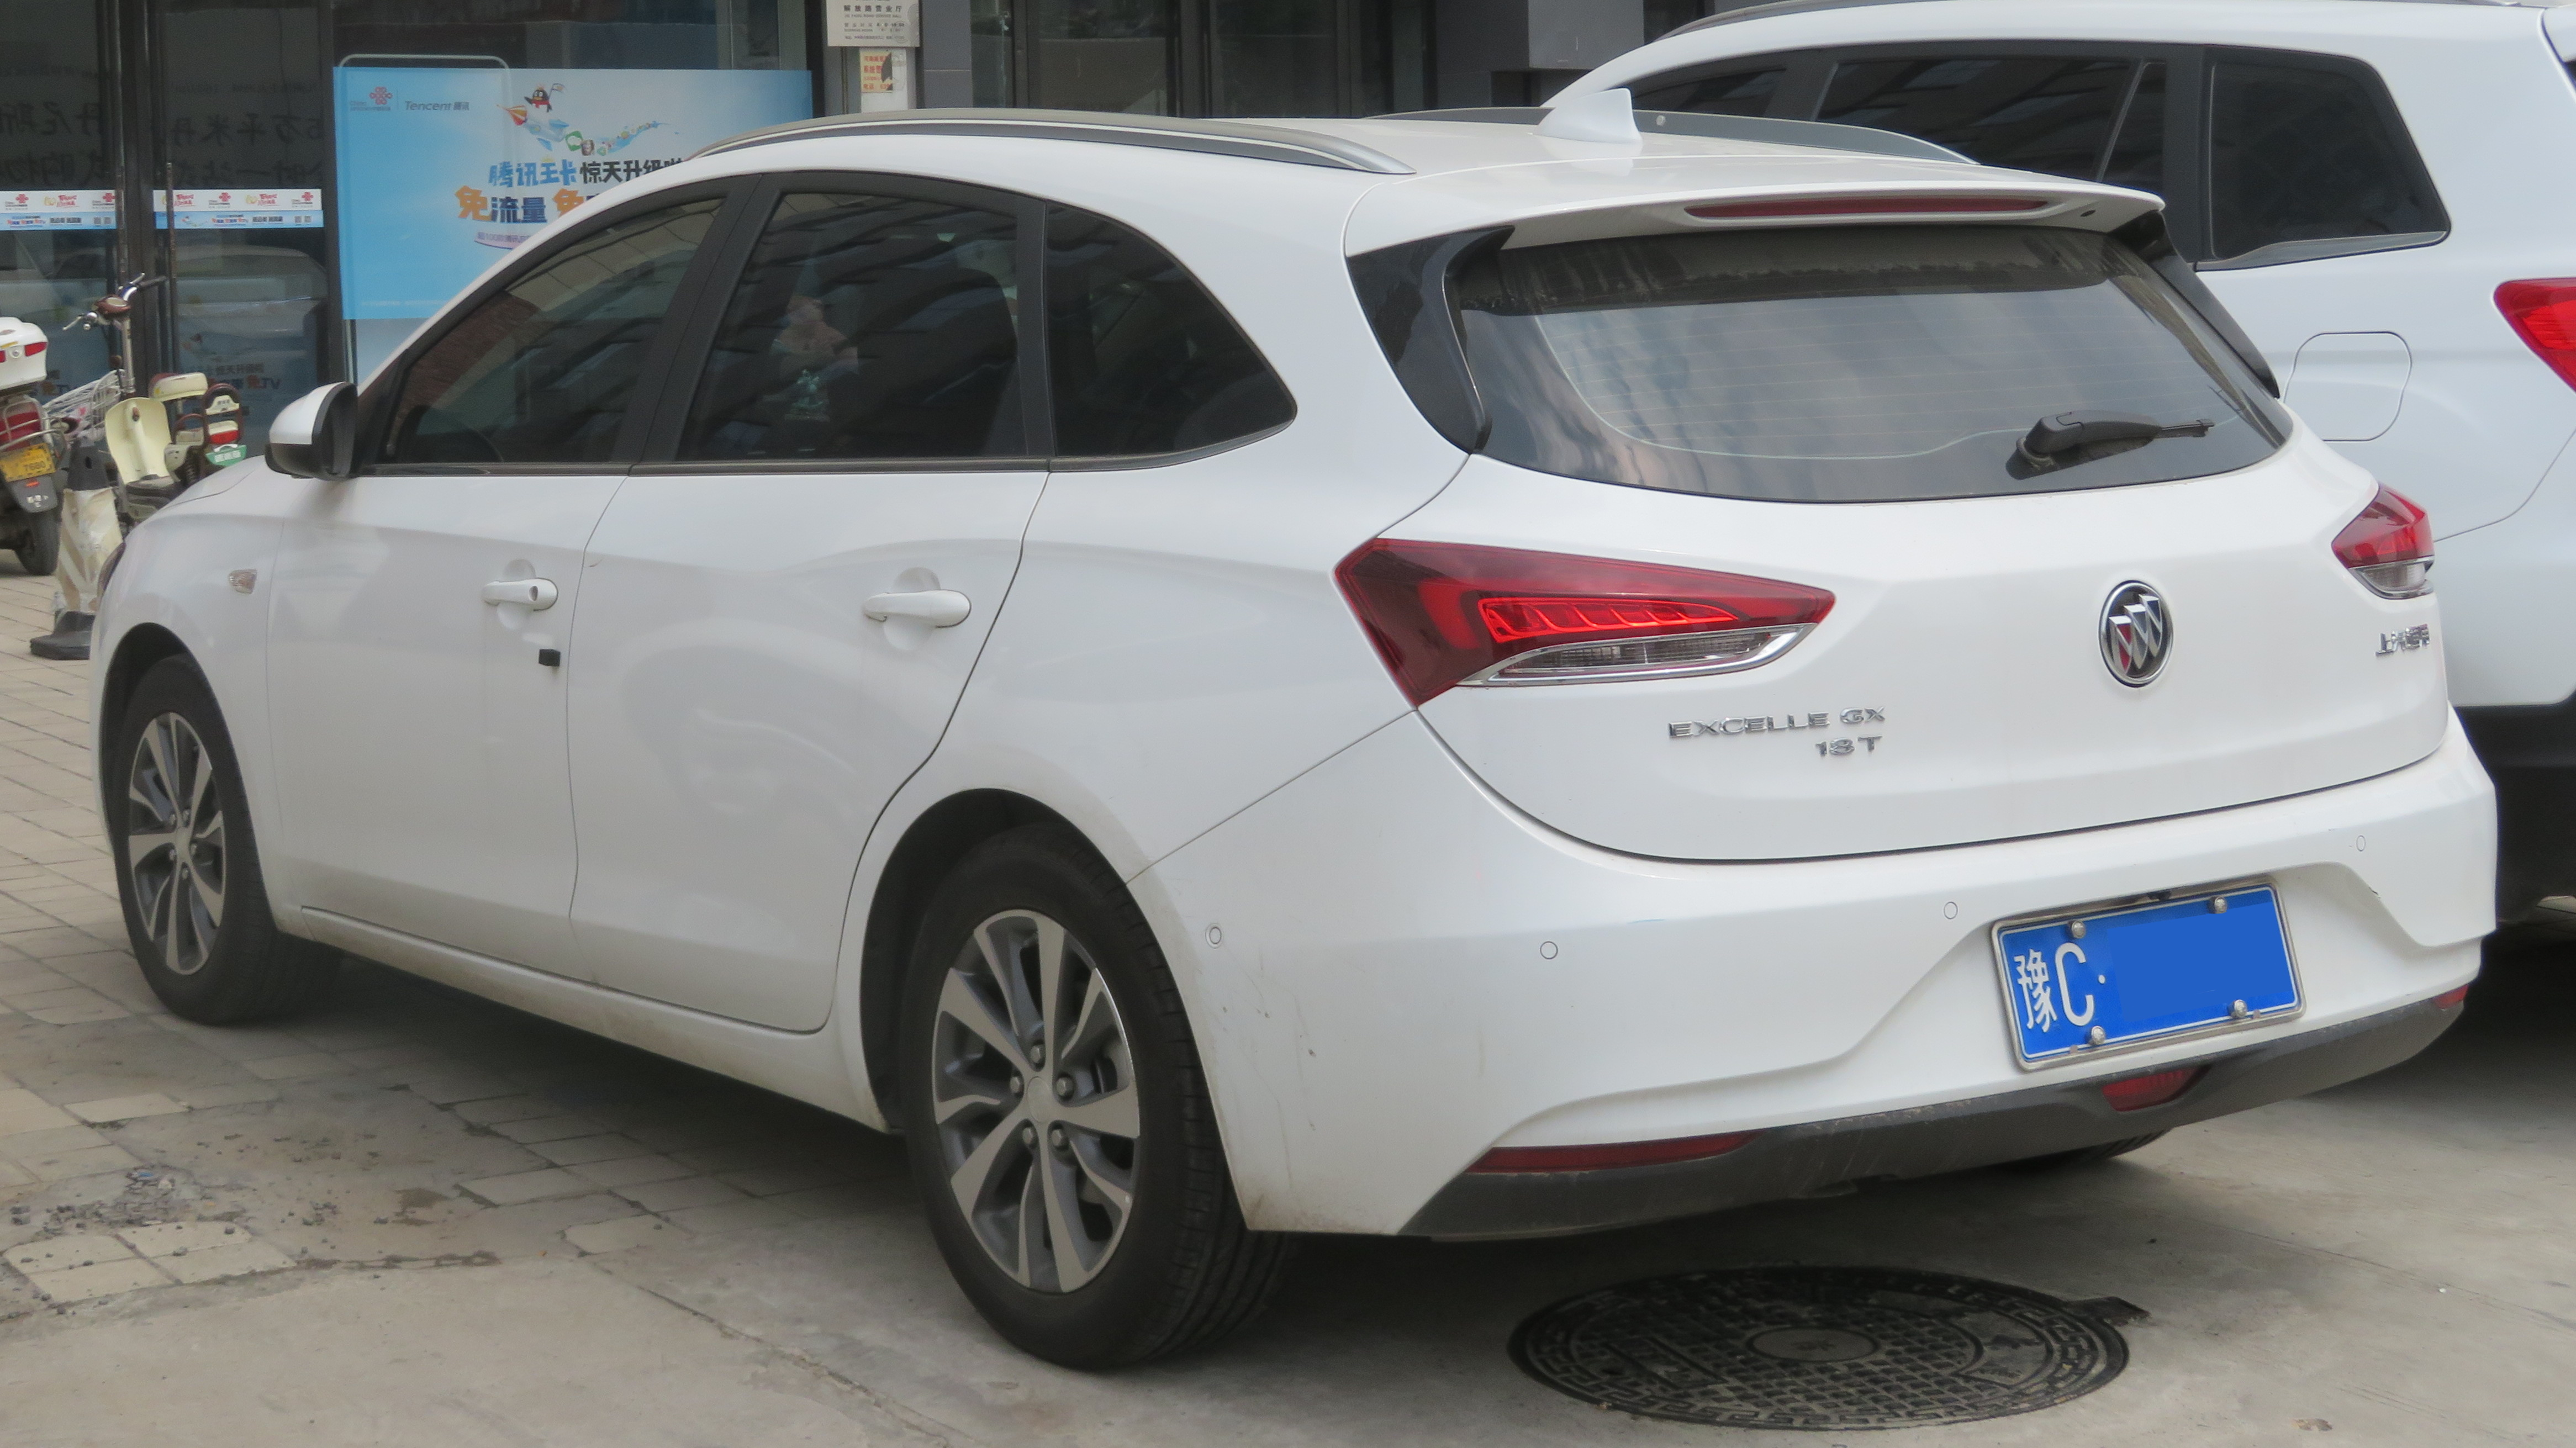 datei:2018 buick excelle gx 1.3t rear 8.14.18 – wikipedia